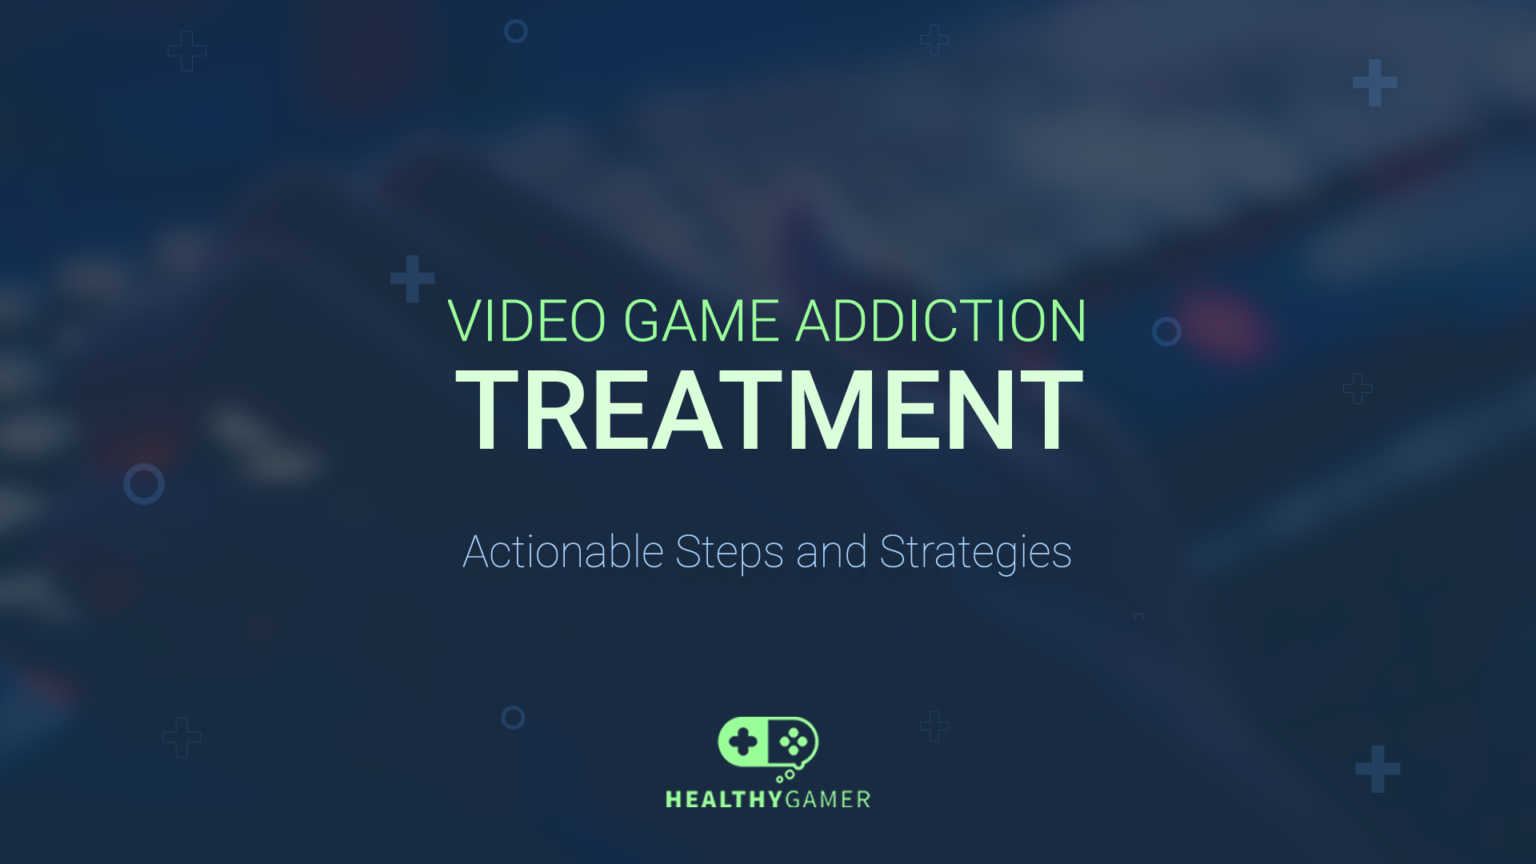 Video Game Addiction Treatment: Actionable Steps and Strategies